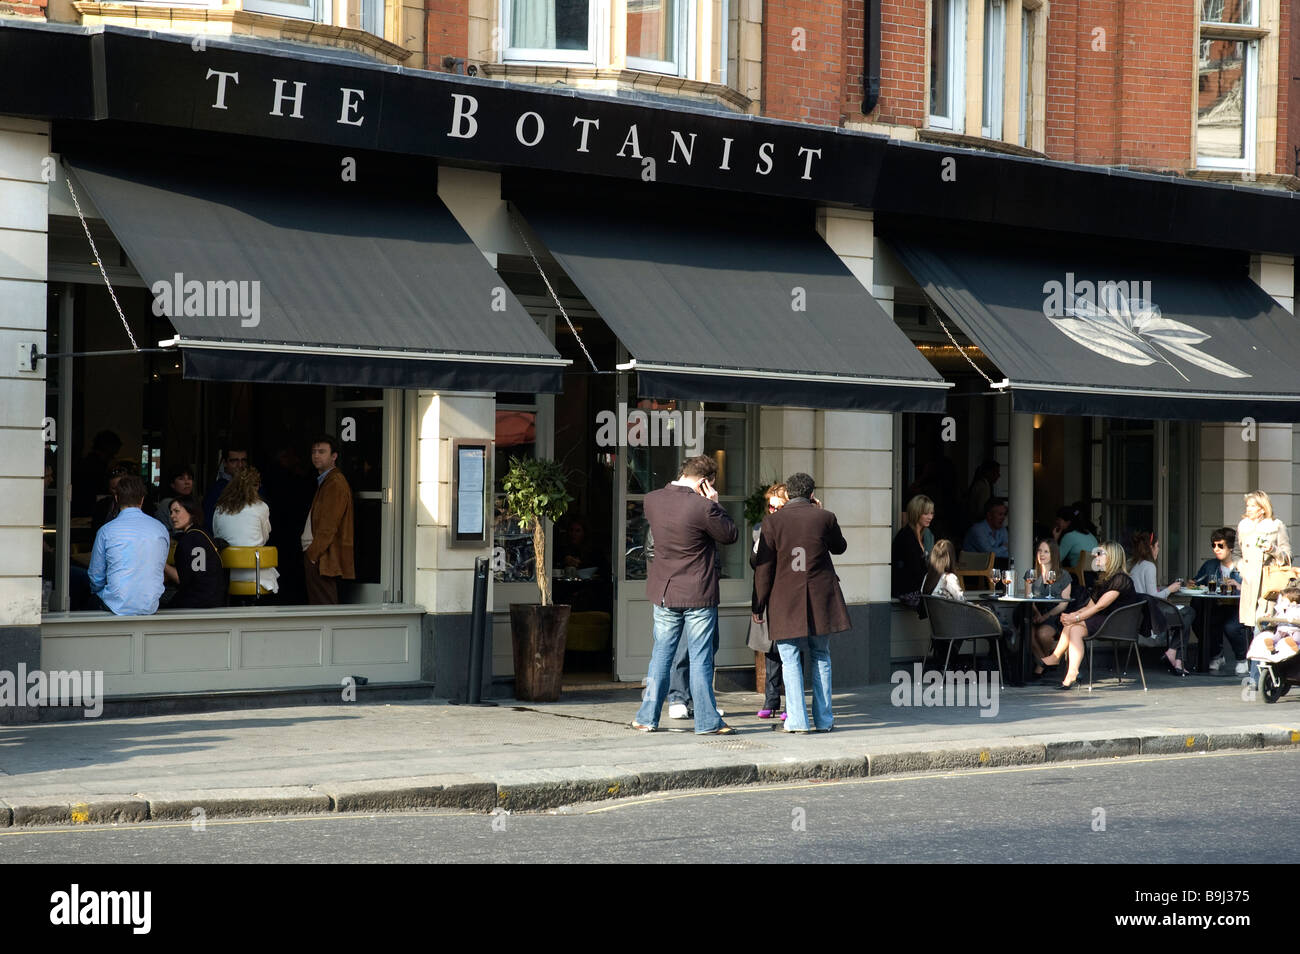 POPULAR WATERING HOLE  AND PUB IN SLOAN SQUARE CHELSEA  LONDON UK - Stock Image